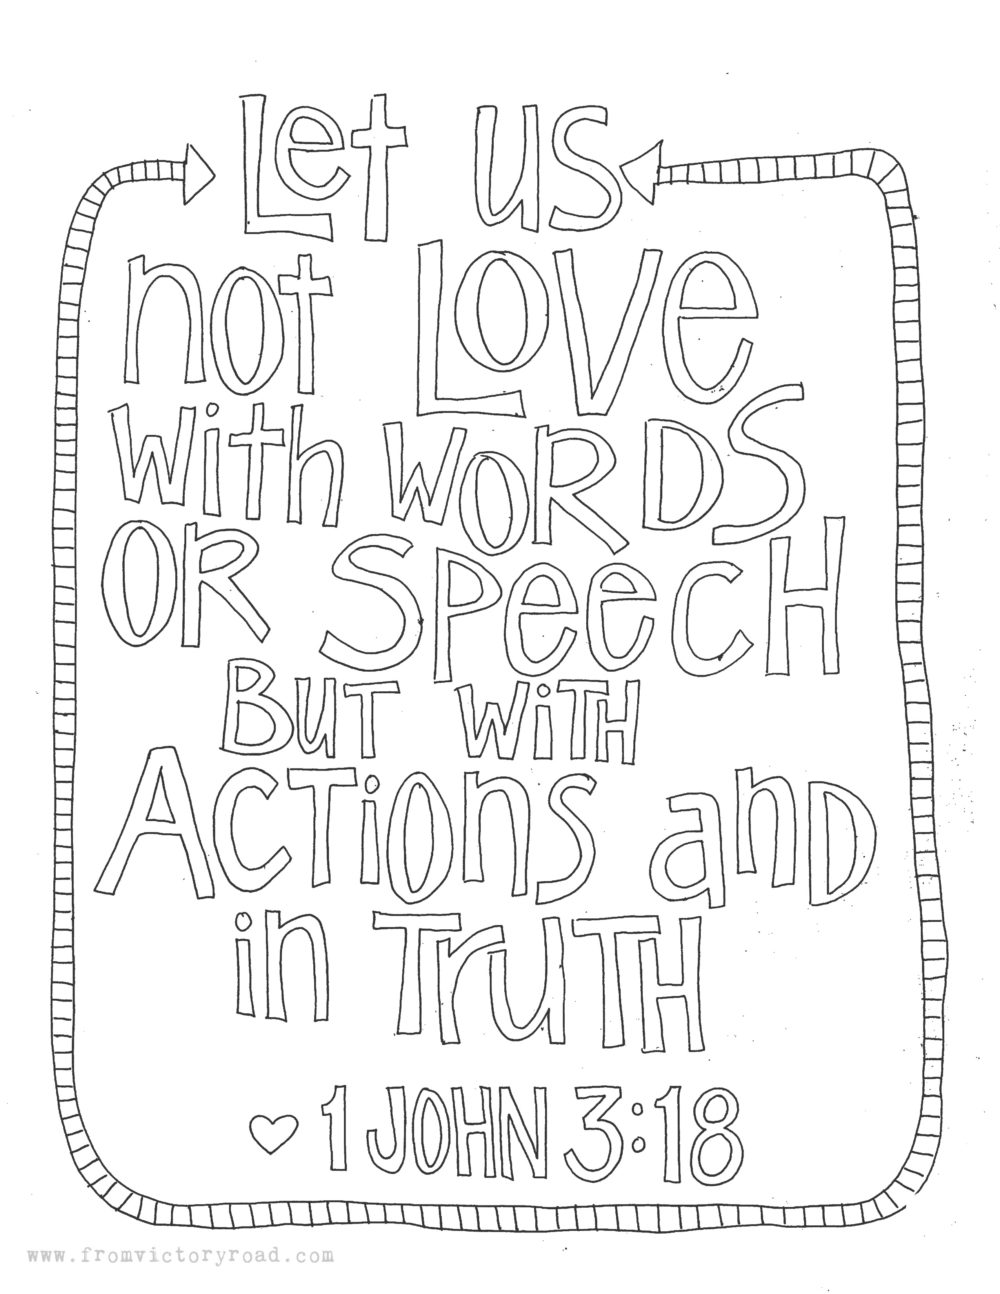 1 John 3:18 Coloring Page – From Victory Road